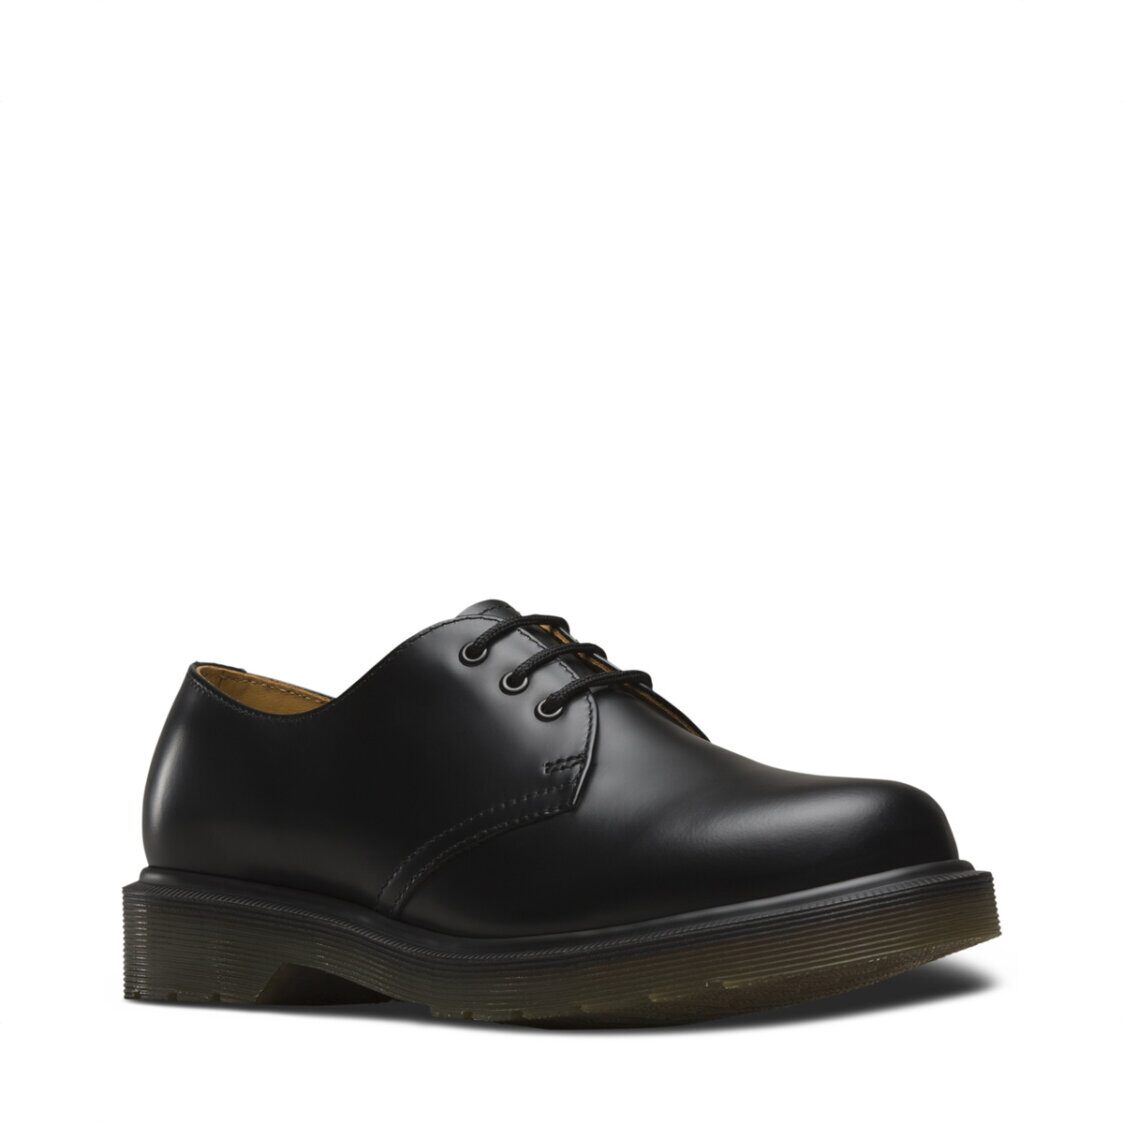 Dr Marten 1461 Plain Welt Smooth Leather Oxford Shoes